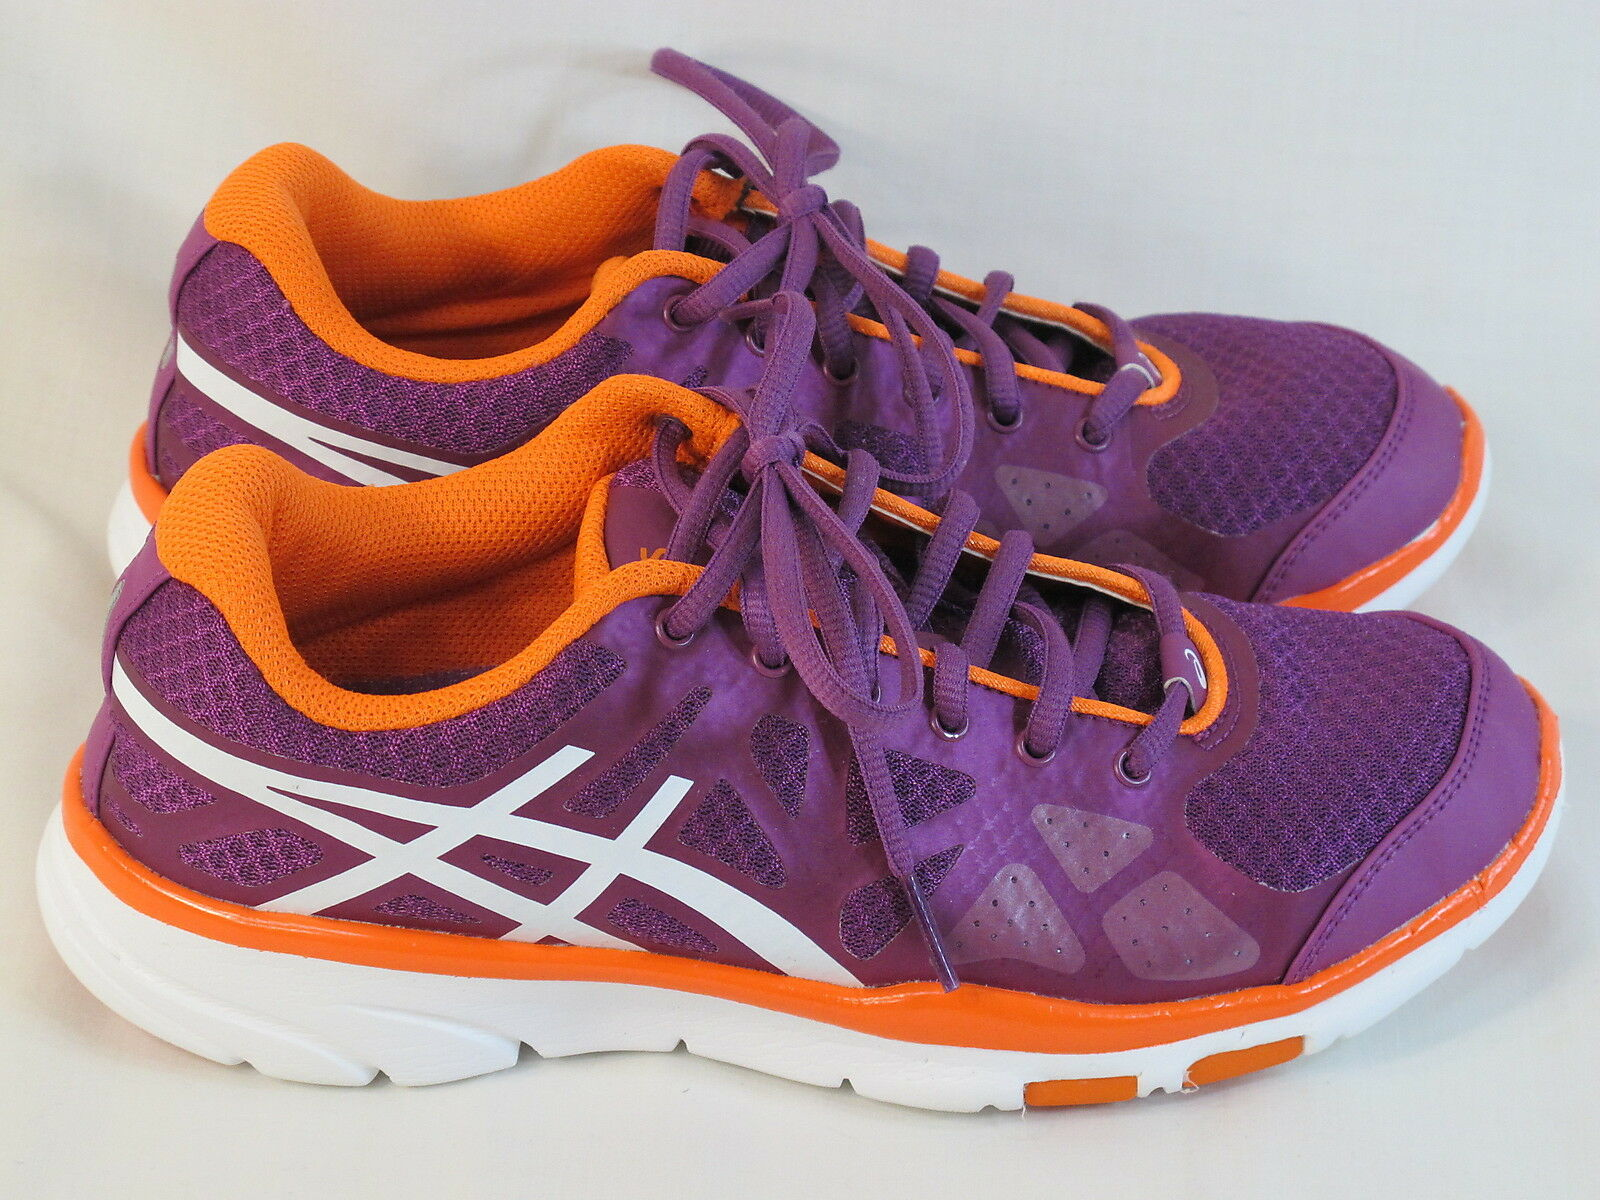 ASICS Gel Harmony TR Cross Training Shoes Women's Comfortable The latest discount shoes for men and women